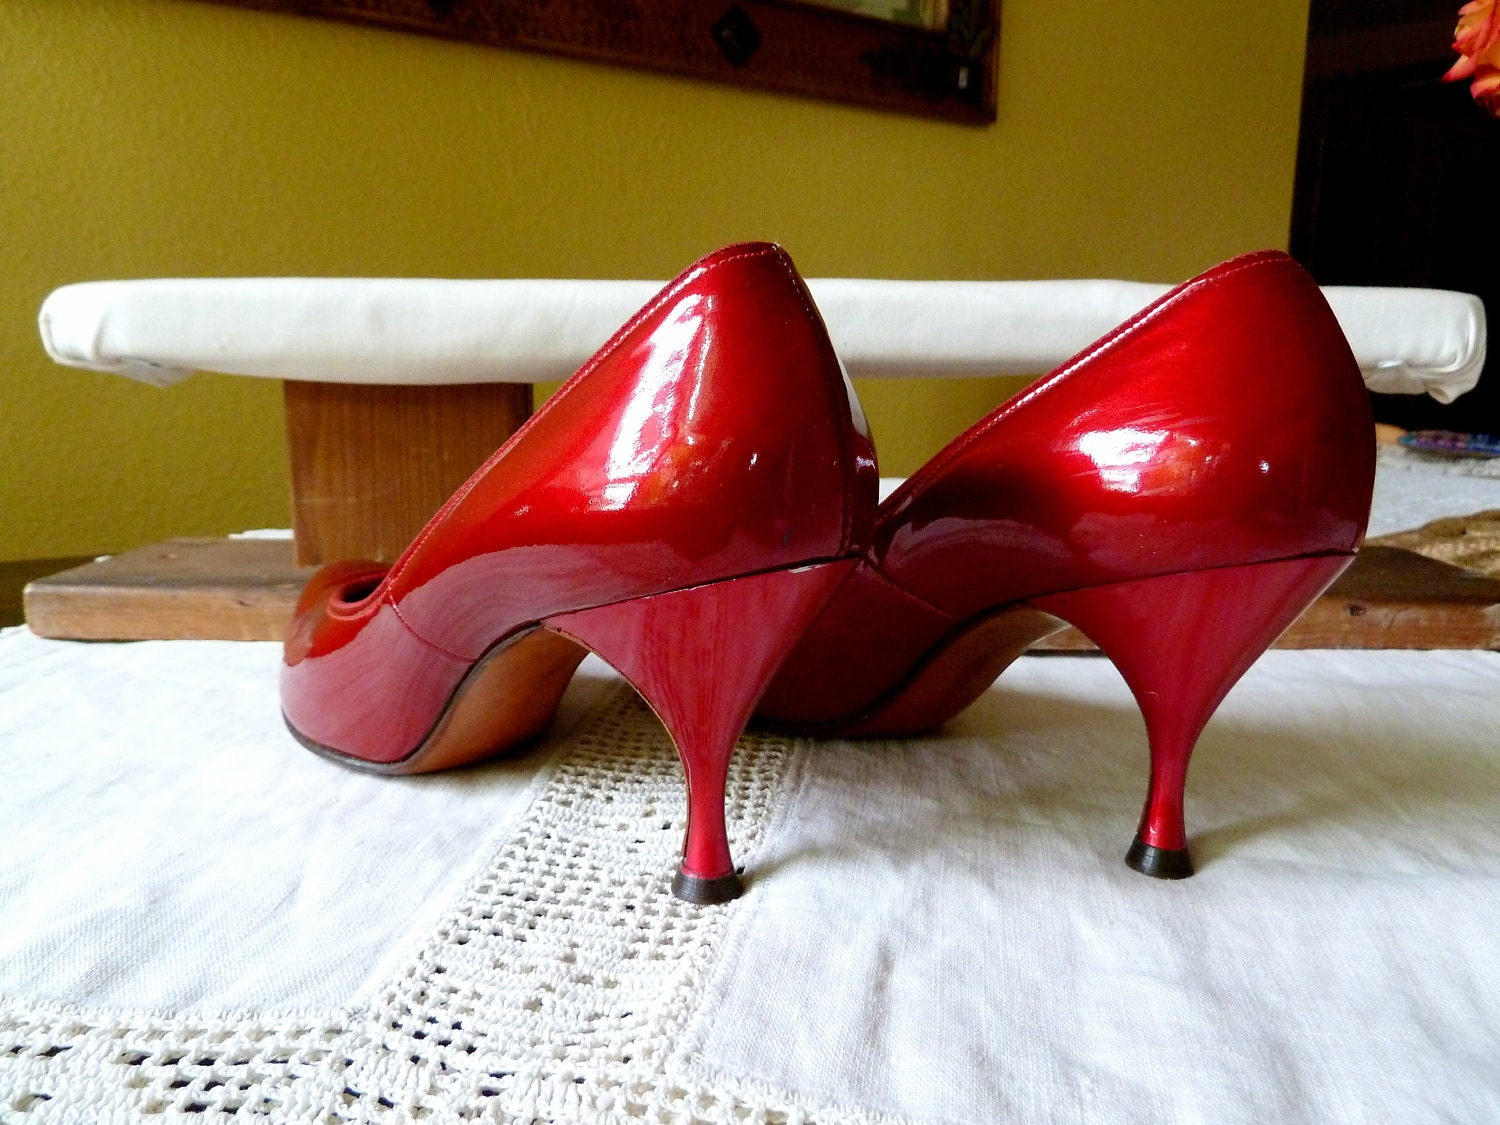 Vintage 1950's Candie Apple Patent Leather Red Pump Shoe, Retro Fashions